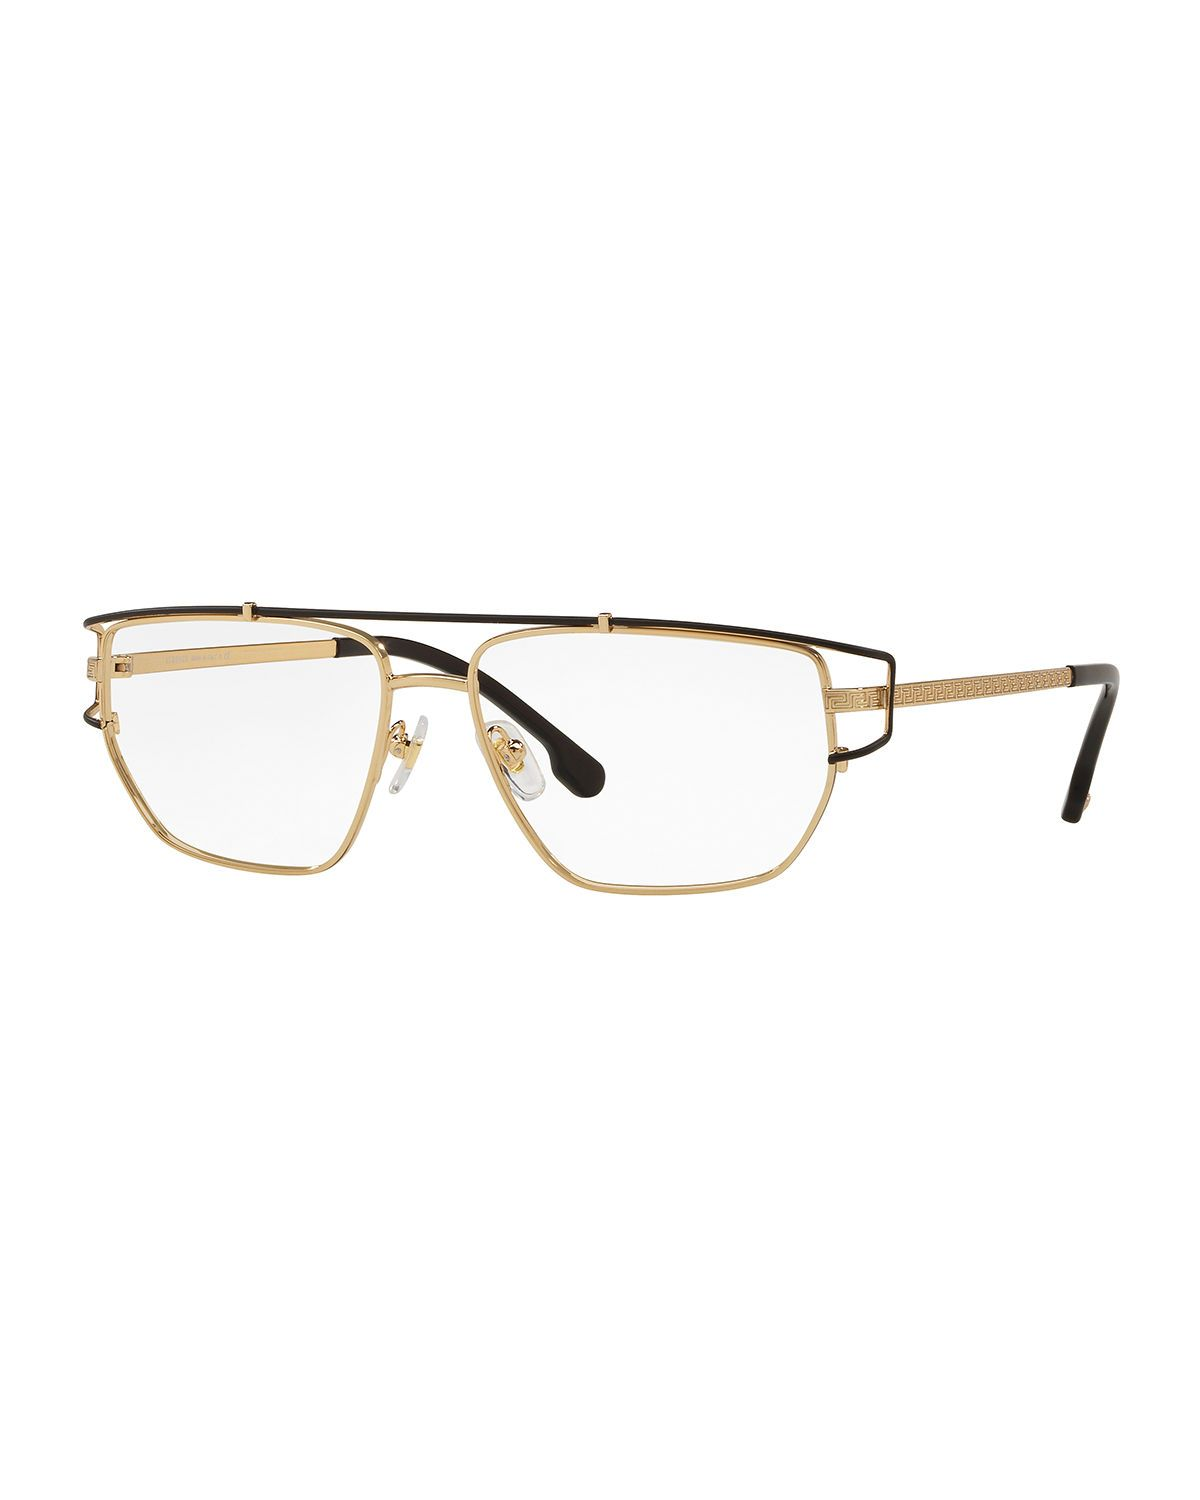 8cecee53e14 VERSACE MEN S METAL WRAP-STYLE OPTICAL GLASSES.  versace